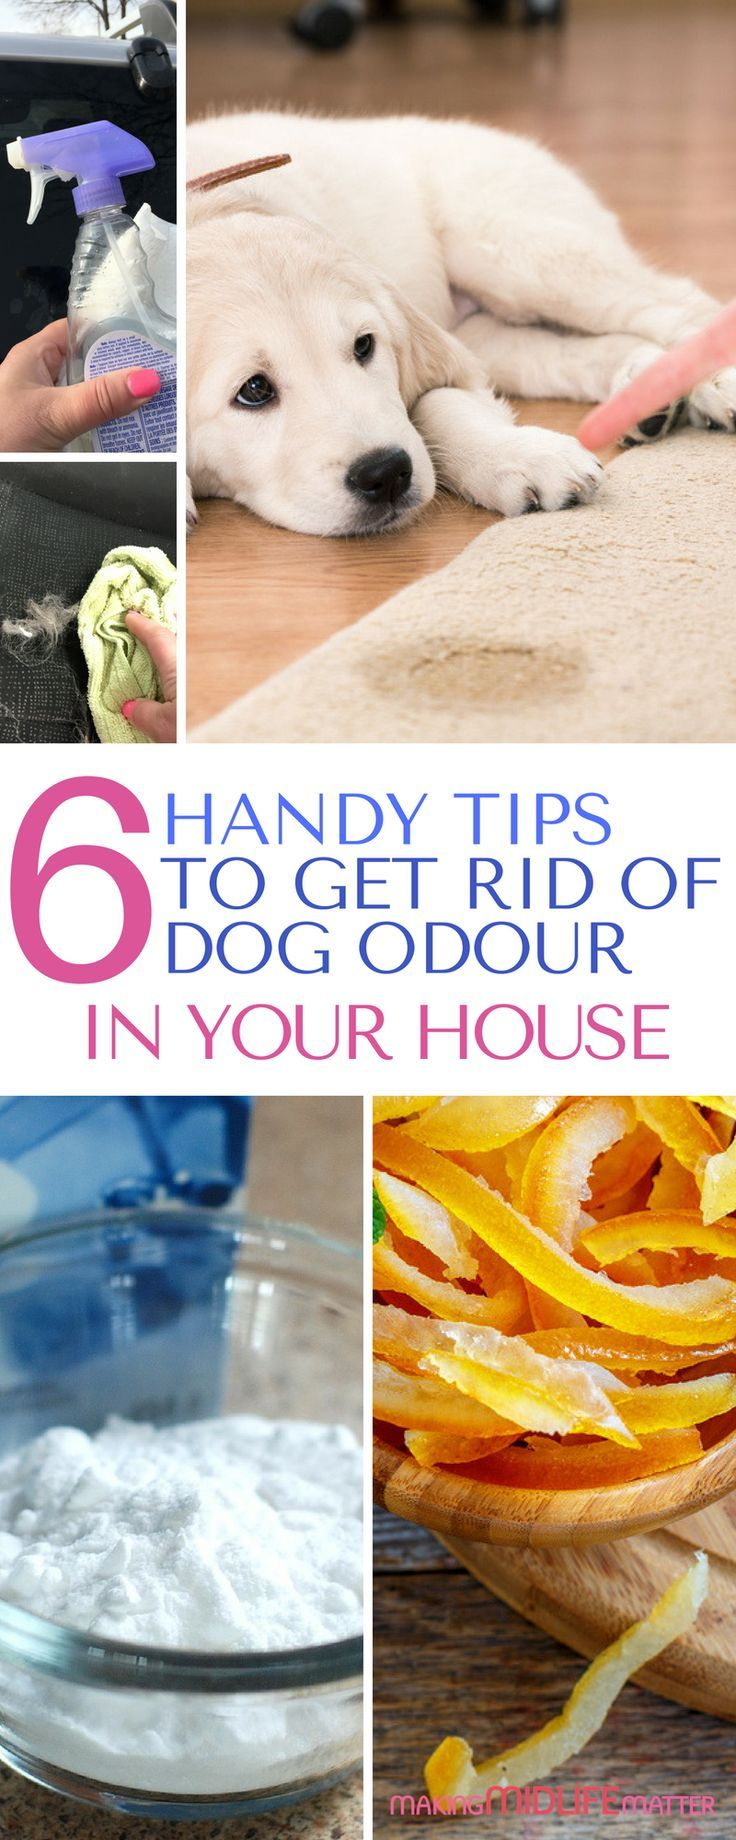 6 Handy Tips To Get Rid Of Dog Odour In Your House Homemaking